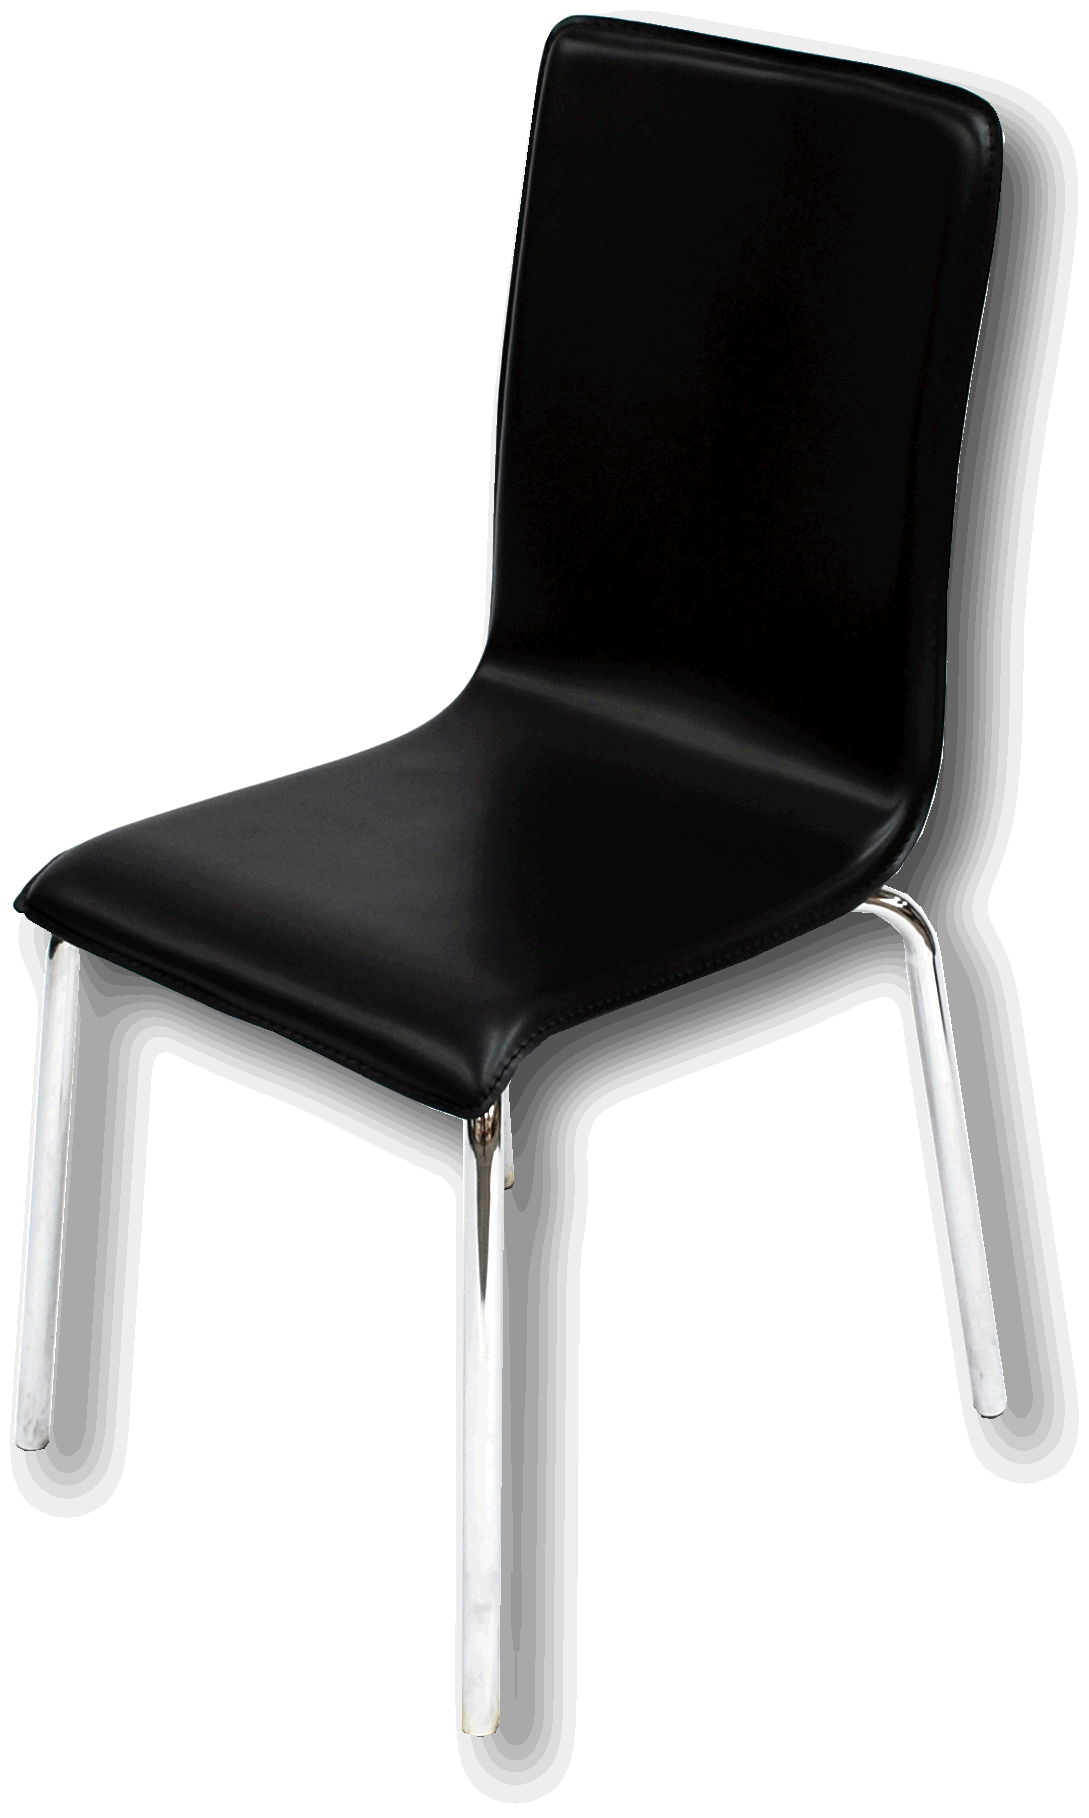 Chair Png Picture PNG Image